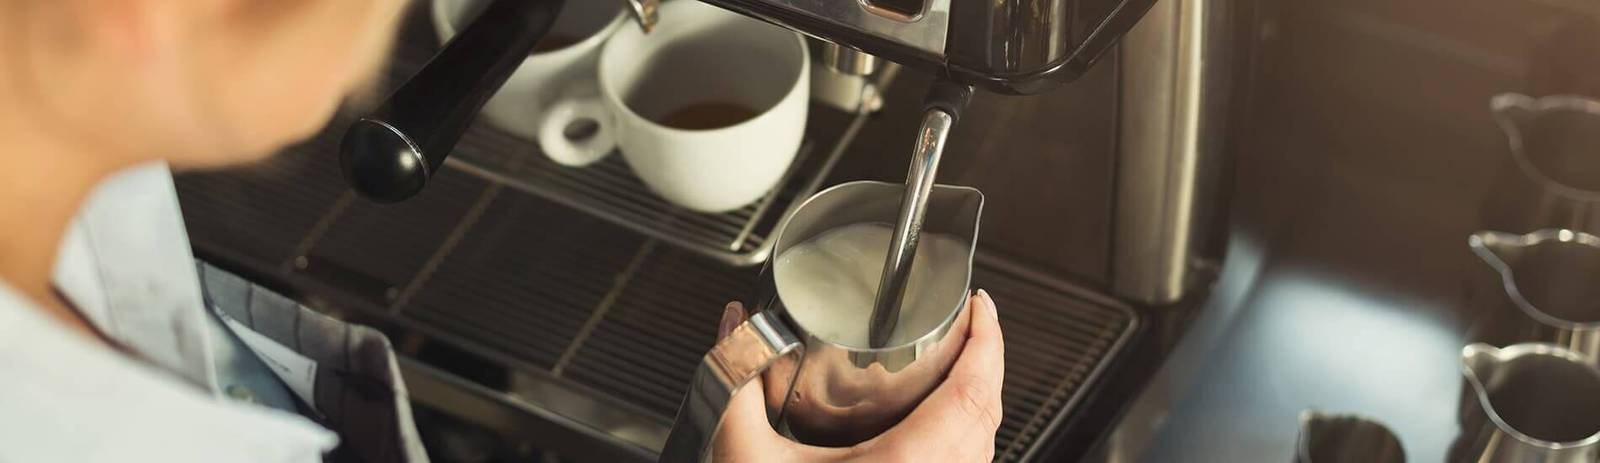 Which Commercial Coffee Machines Do the Pros Use?